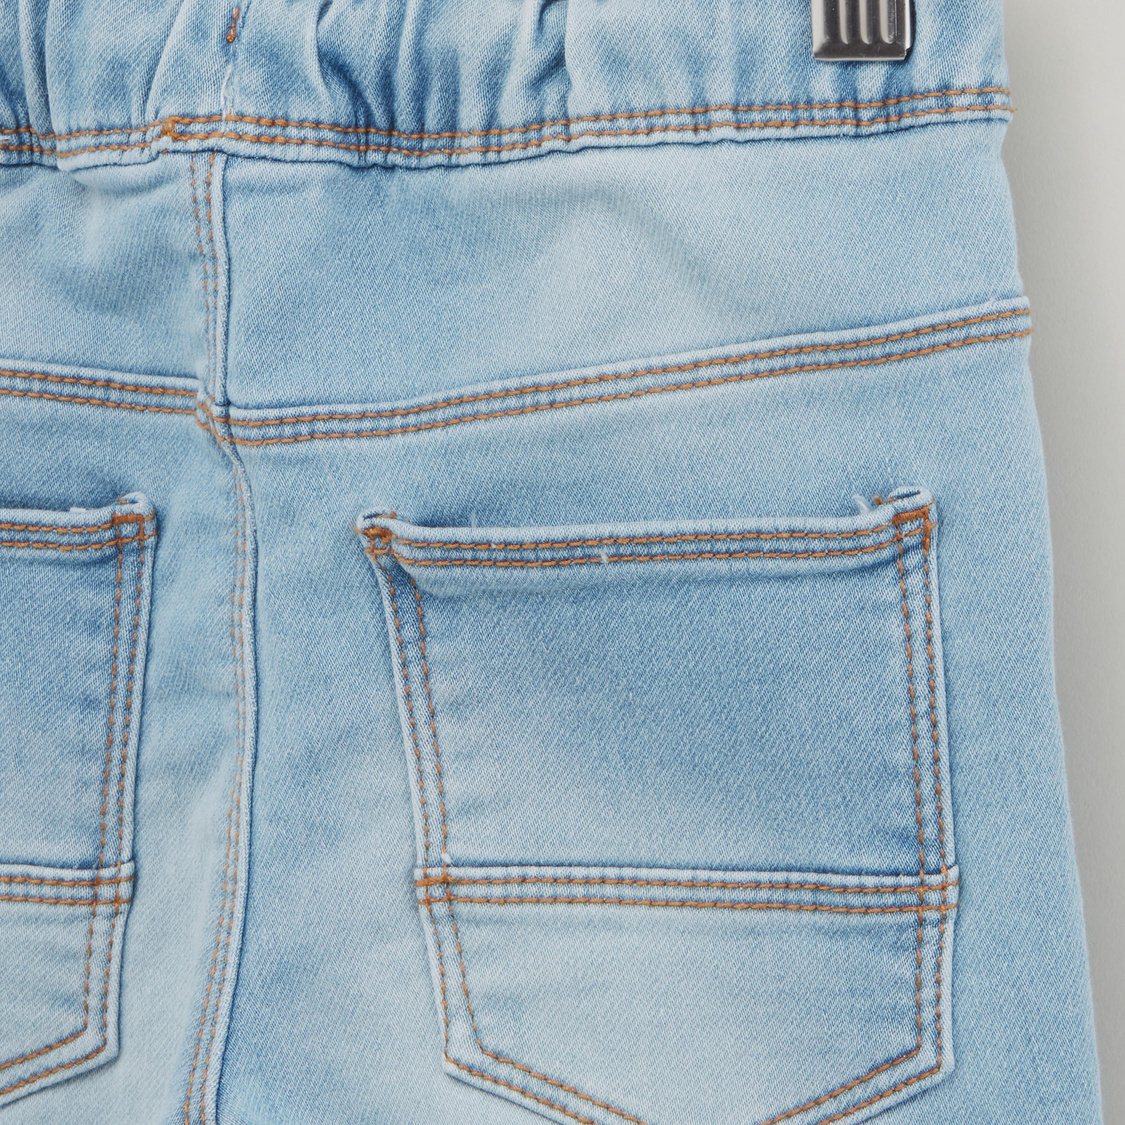 Denim Shorts with Pocket Detail and Drawstring